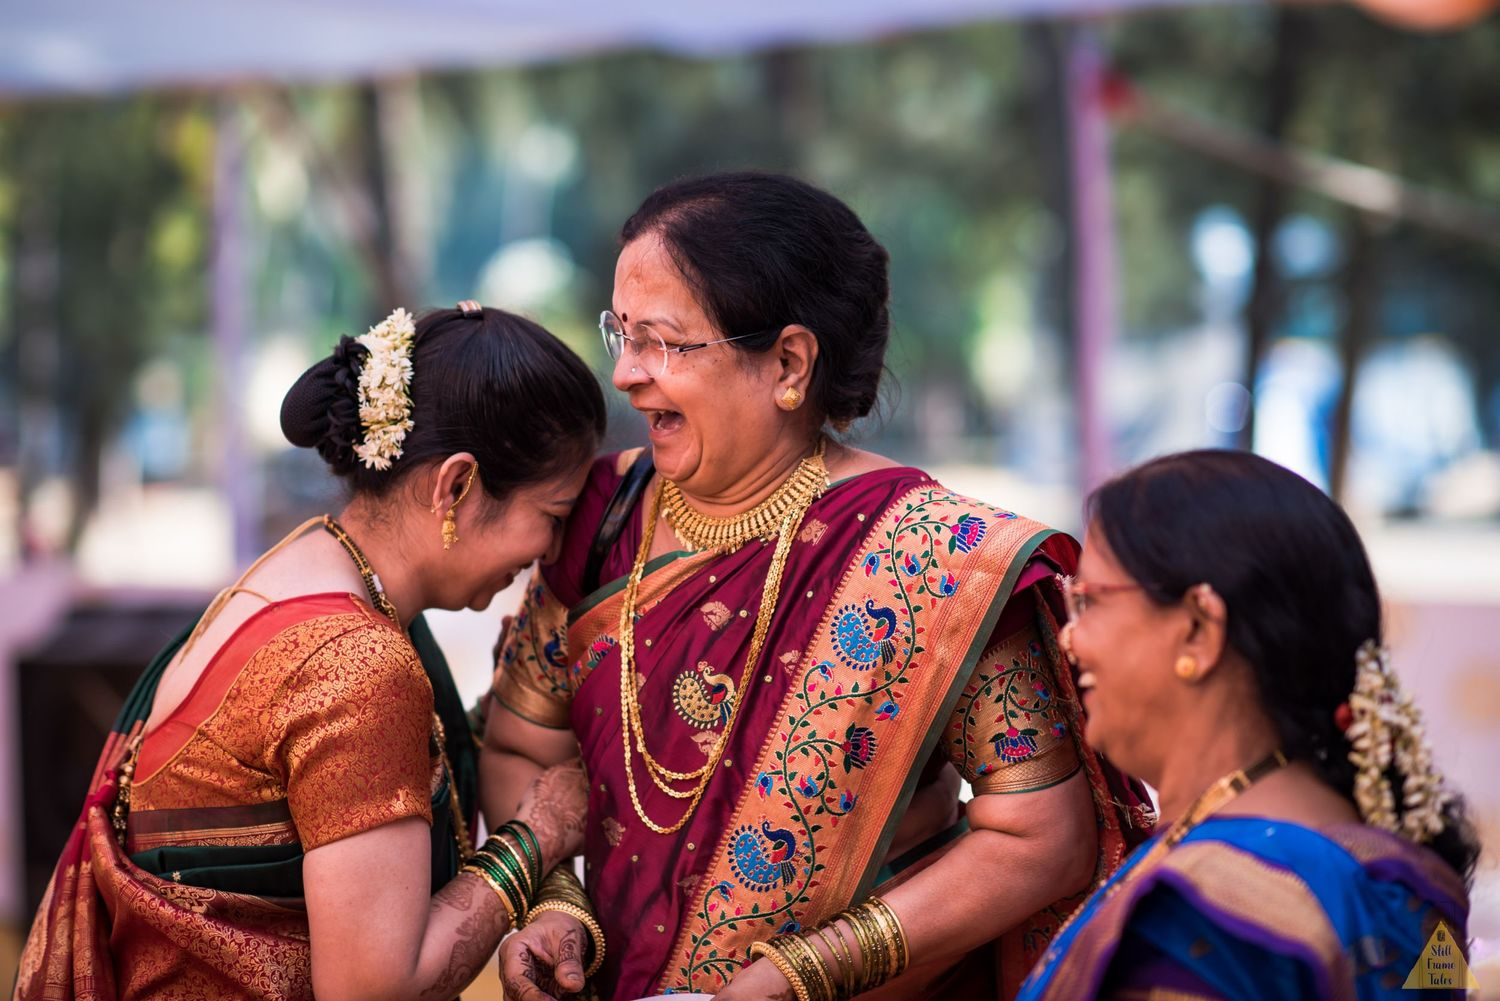 Groom's mother and relatives enjoying and laughing in a candid moment